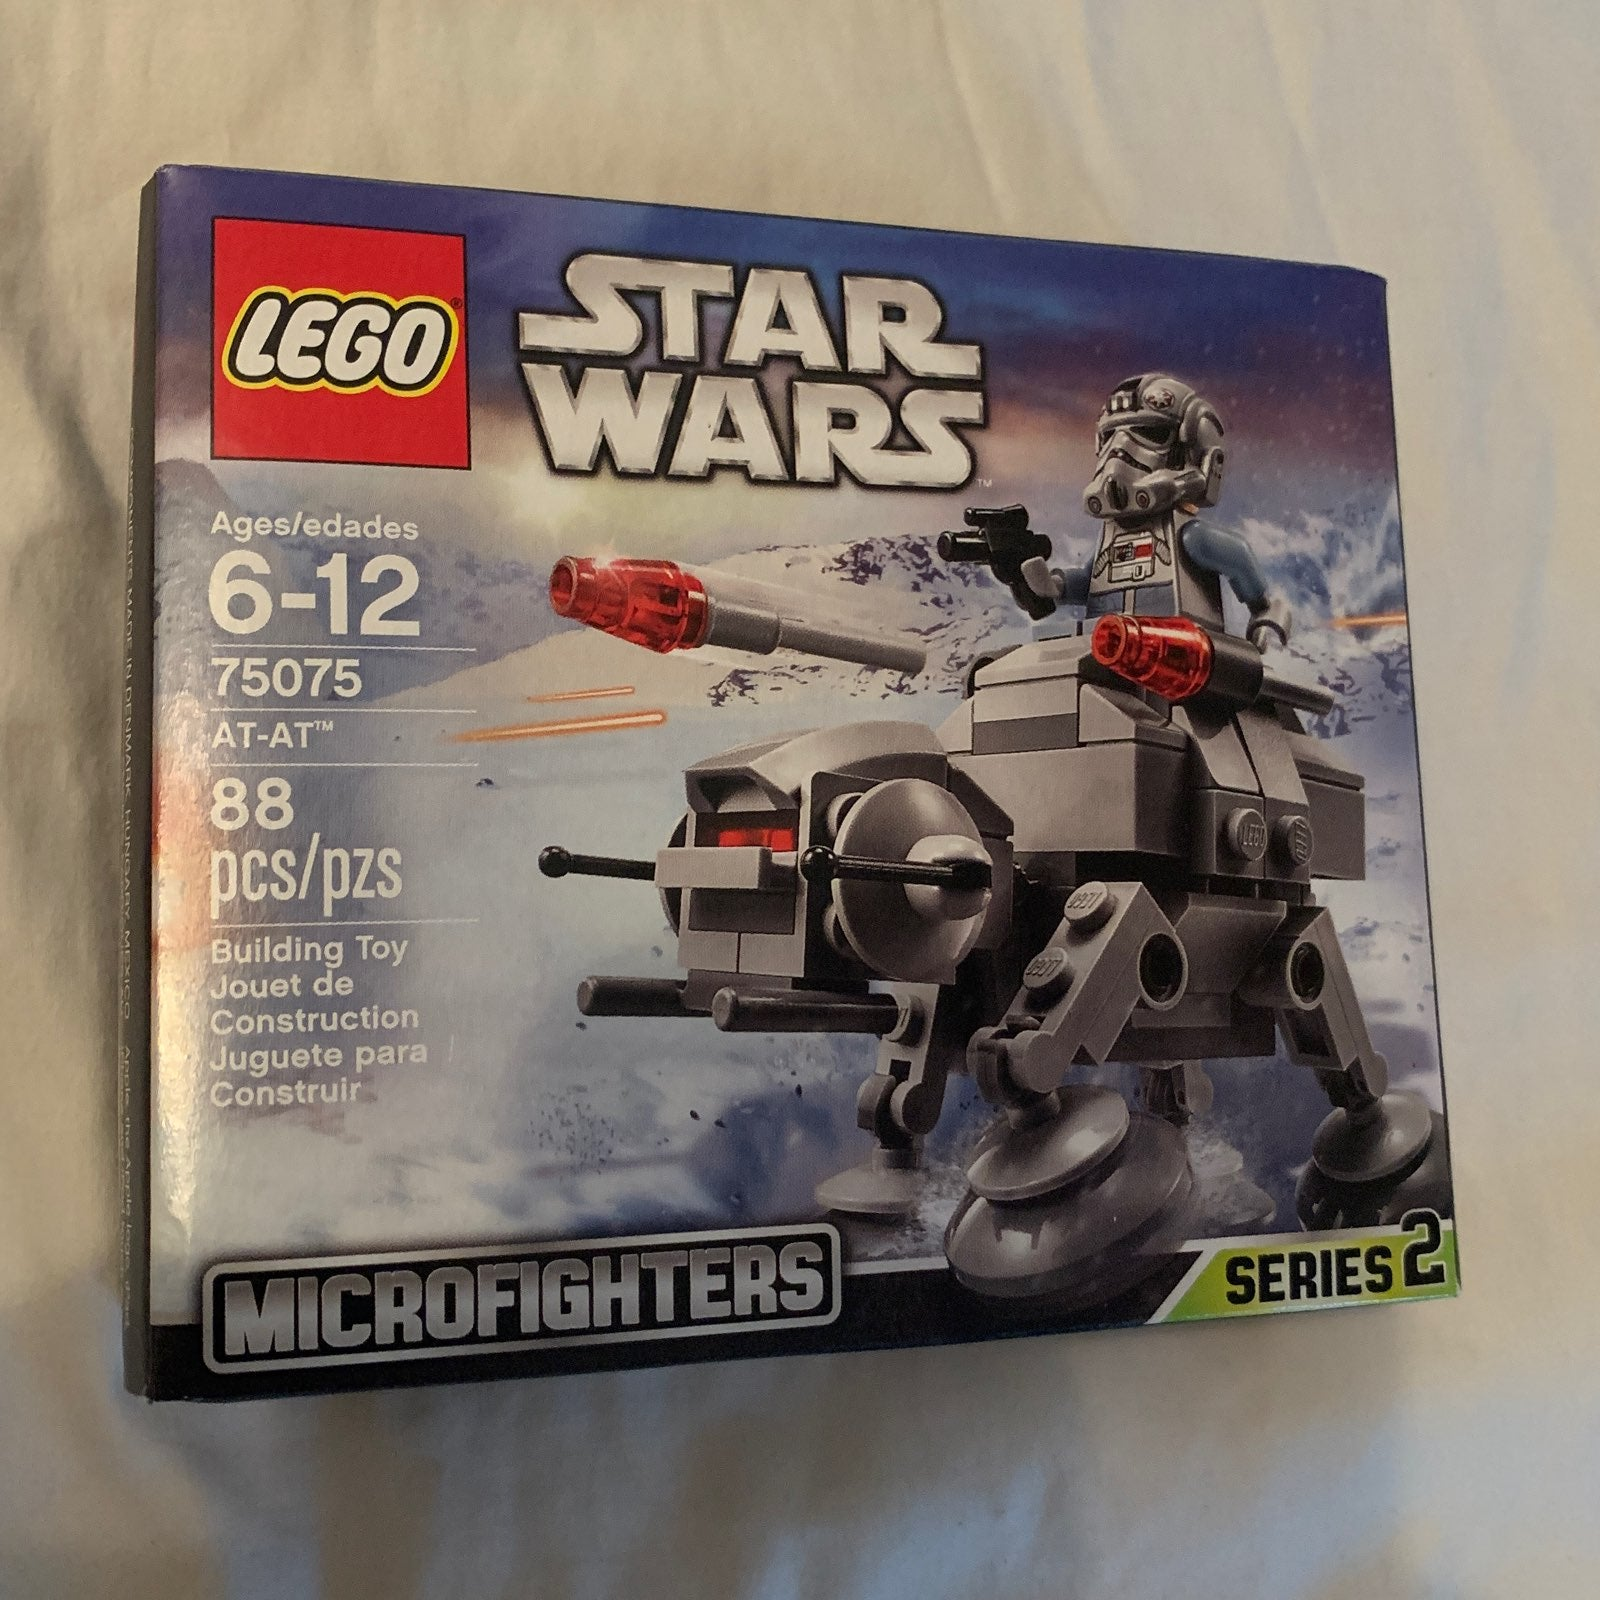 AT-AT Microfighter LEGO 75075